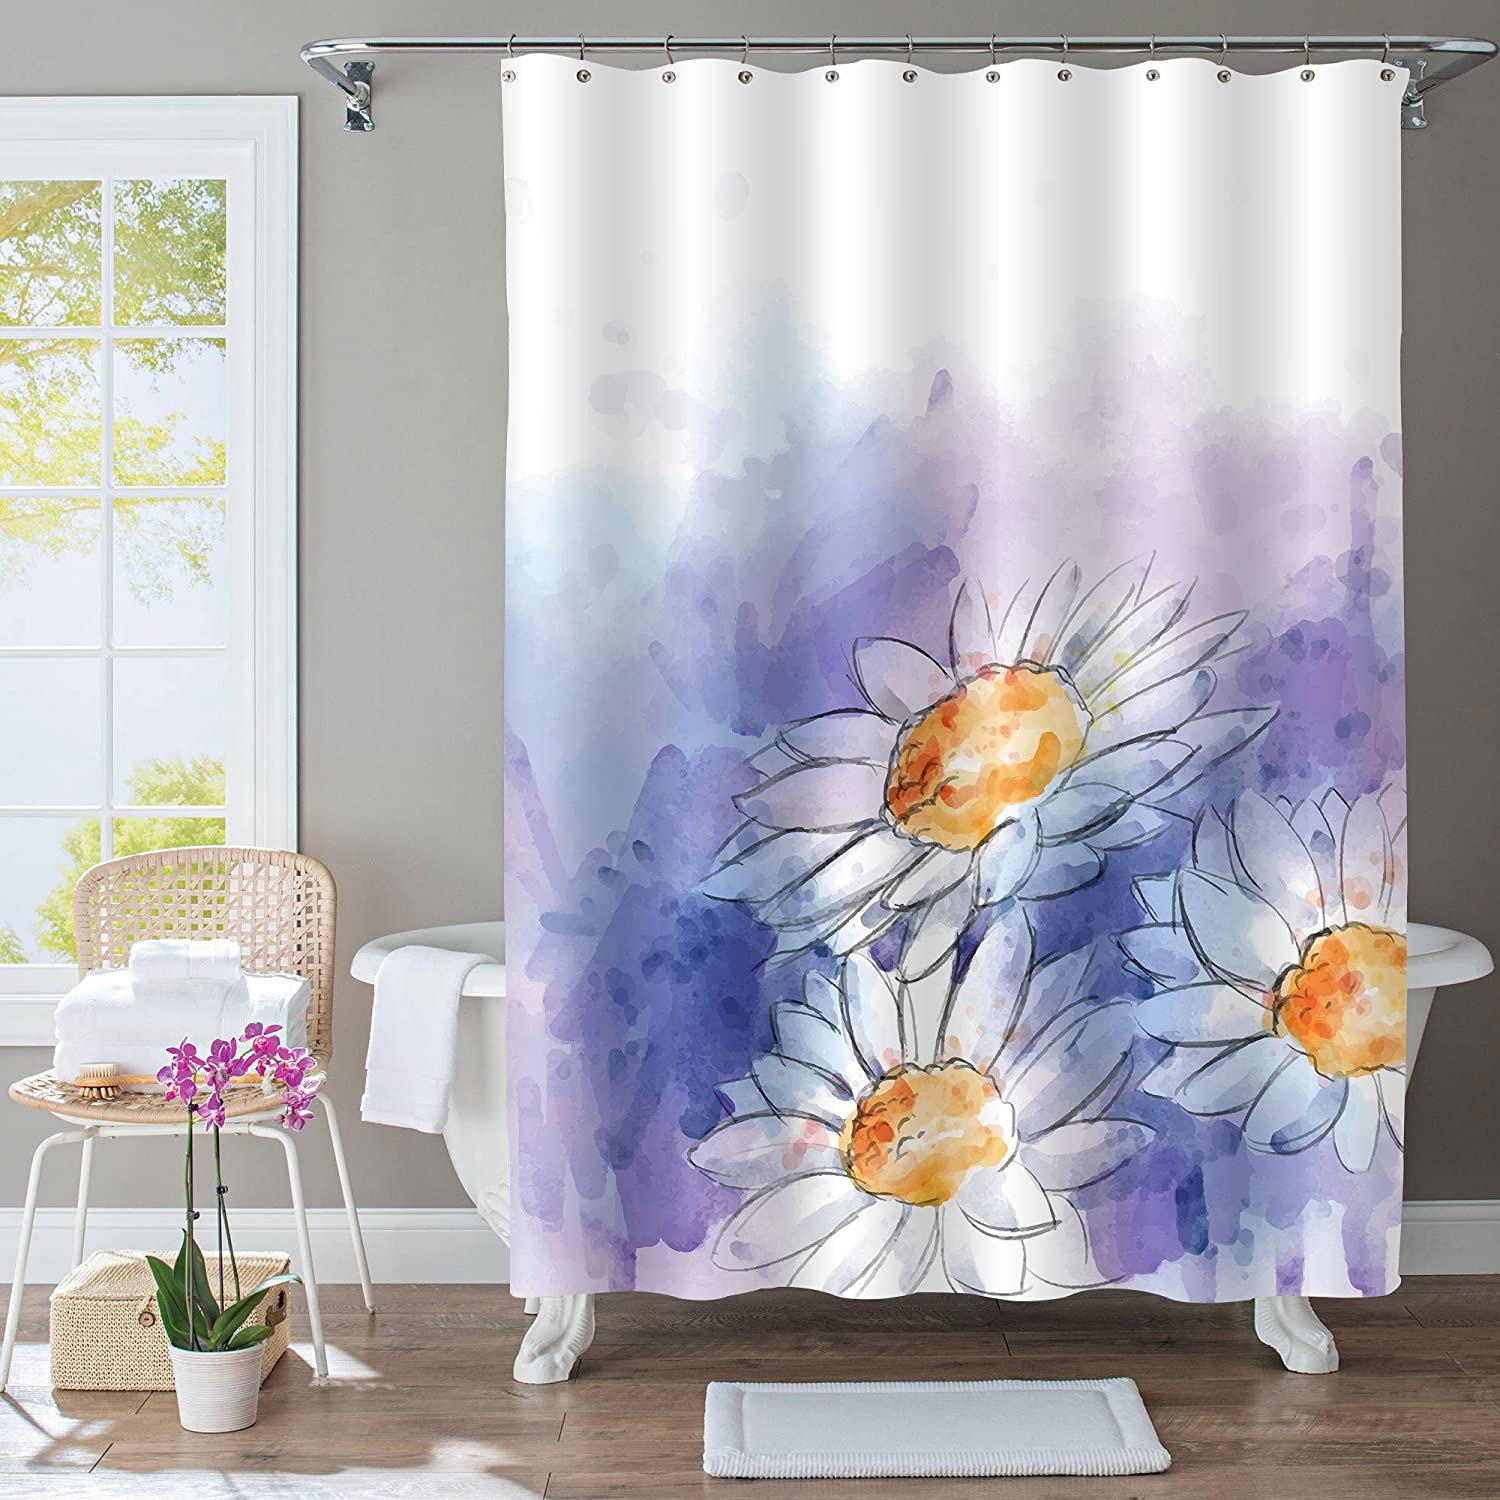 Amazon.com: Spring Flower Bathroom Decor Blooming Daisy Shower ...